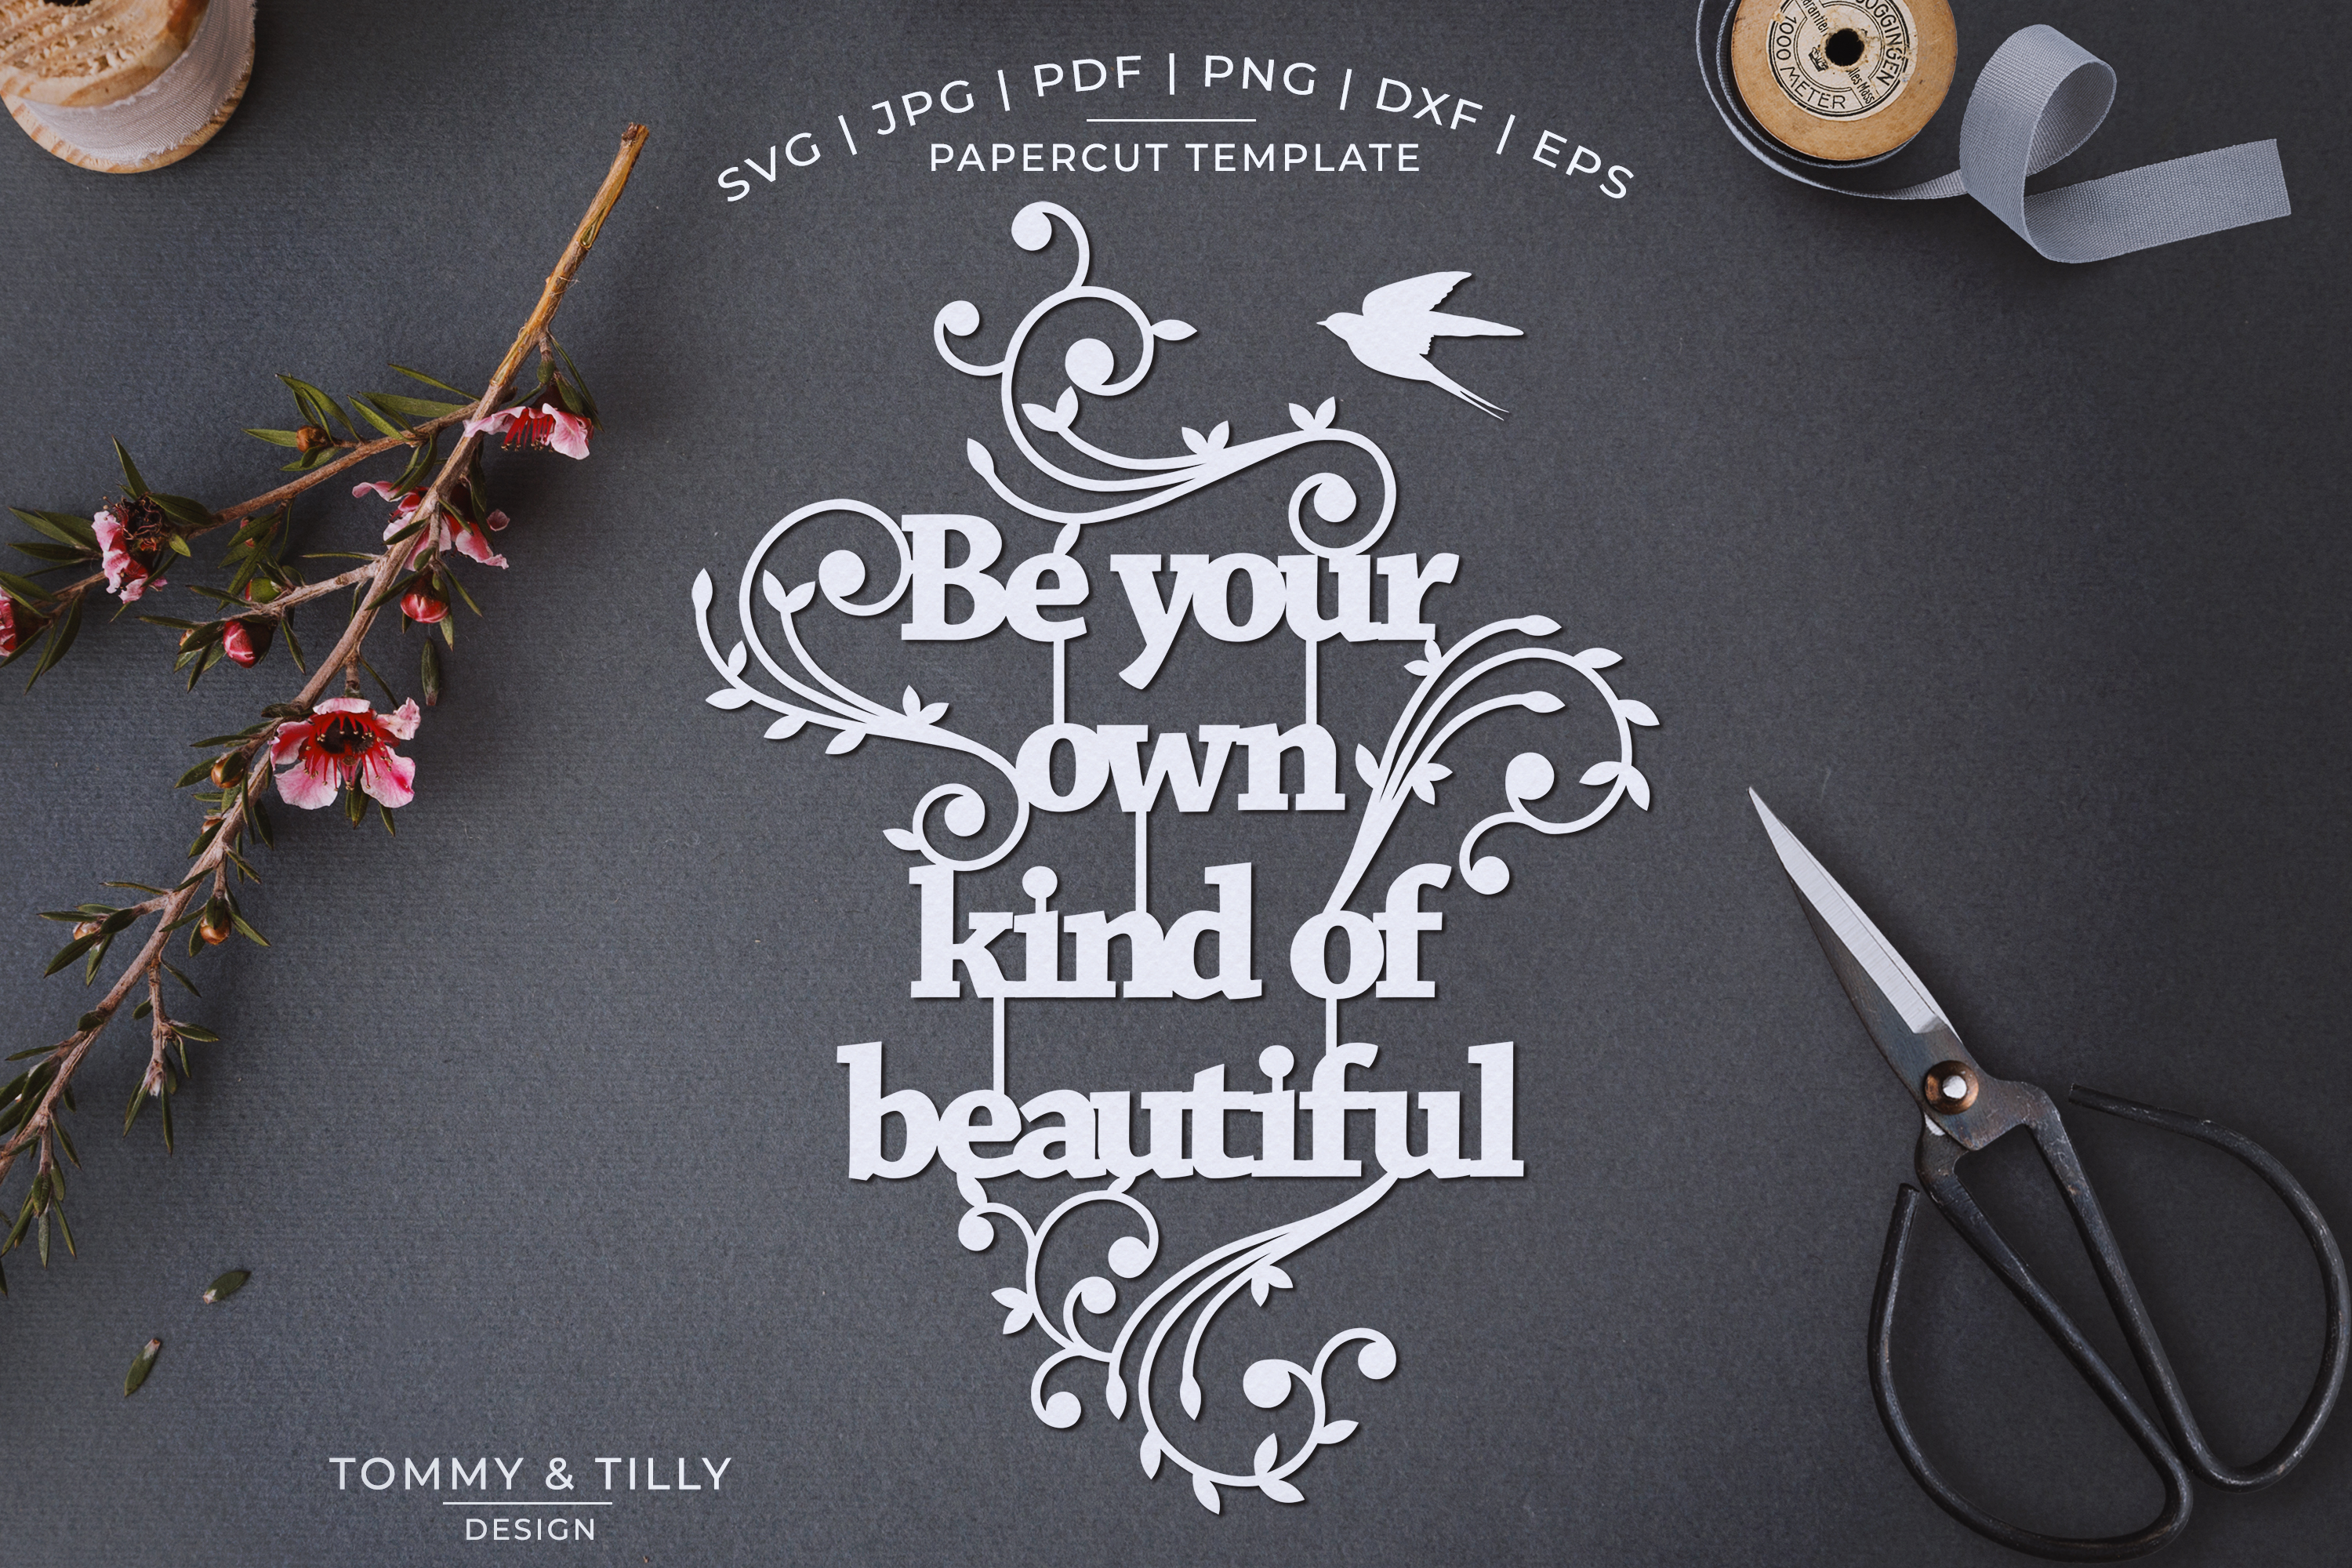 Be your own kind of beautiful - Papercut SVG EPS DXF PNG PDF example image 1